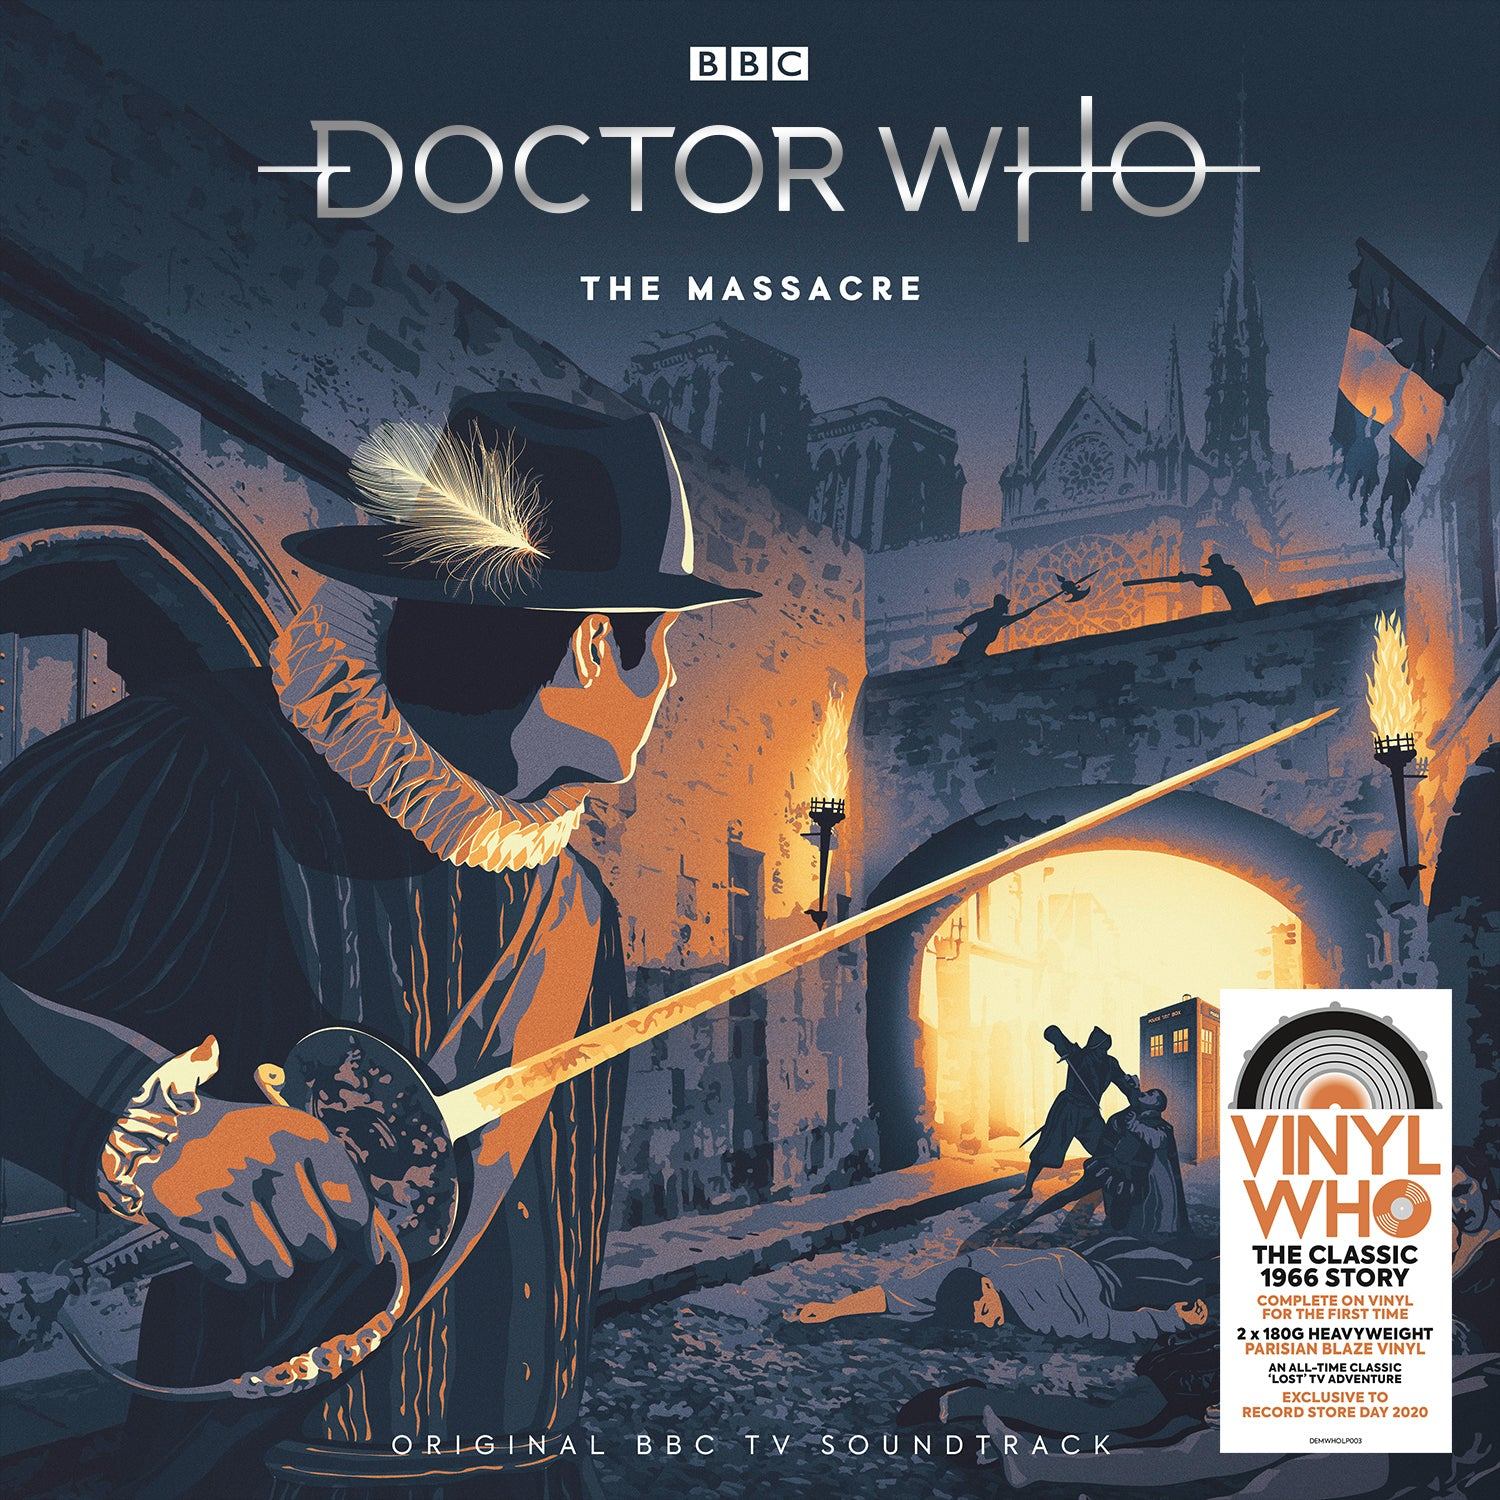 Doctor Who - Doctor Who - The Massacre (RSD 2020 Drop One)  2LP 180g 'Parisian Blaze' Colour Vinyl Record Album